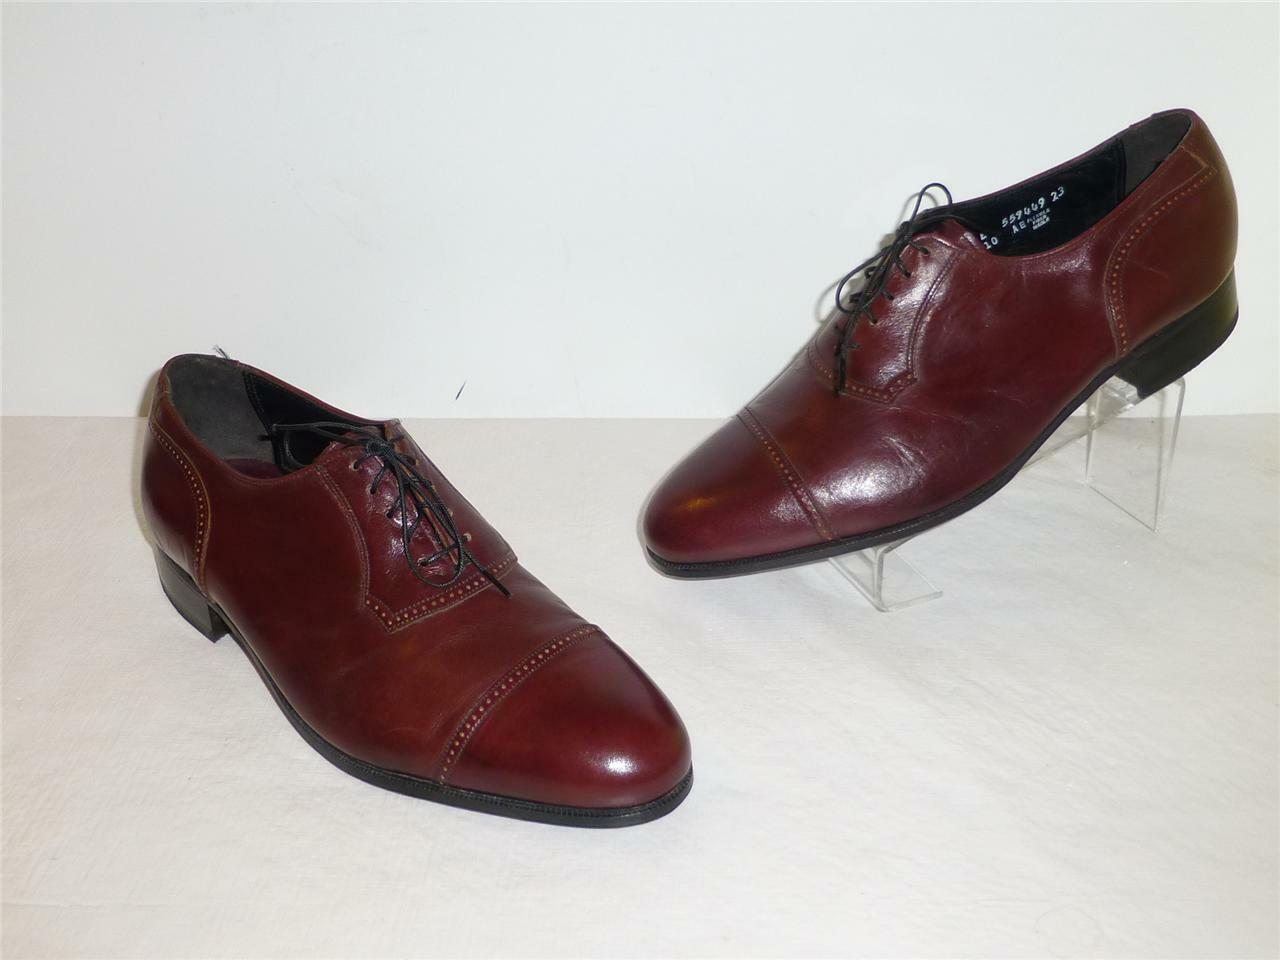 Florsheim Designer Collection Burgundy Leather Thin Lace Formal Oxfords 9.5E ONS